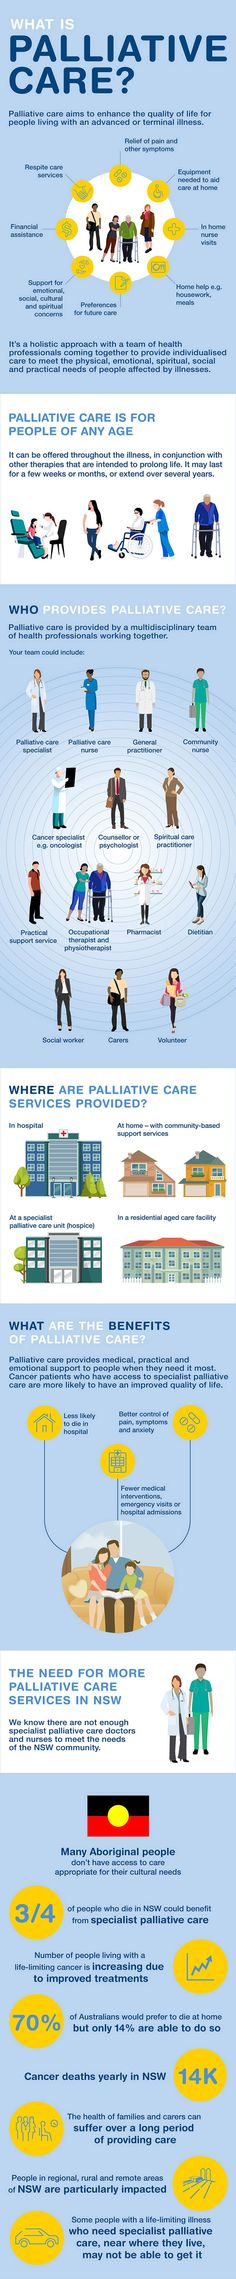 What is palliative care? infographic